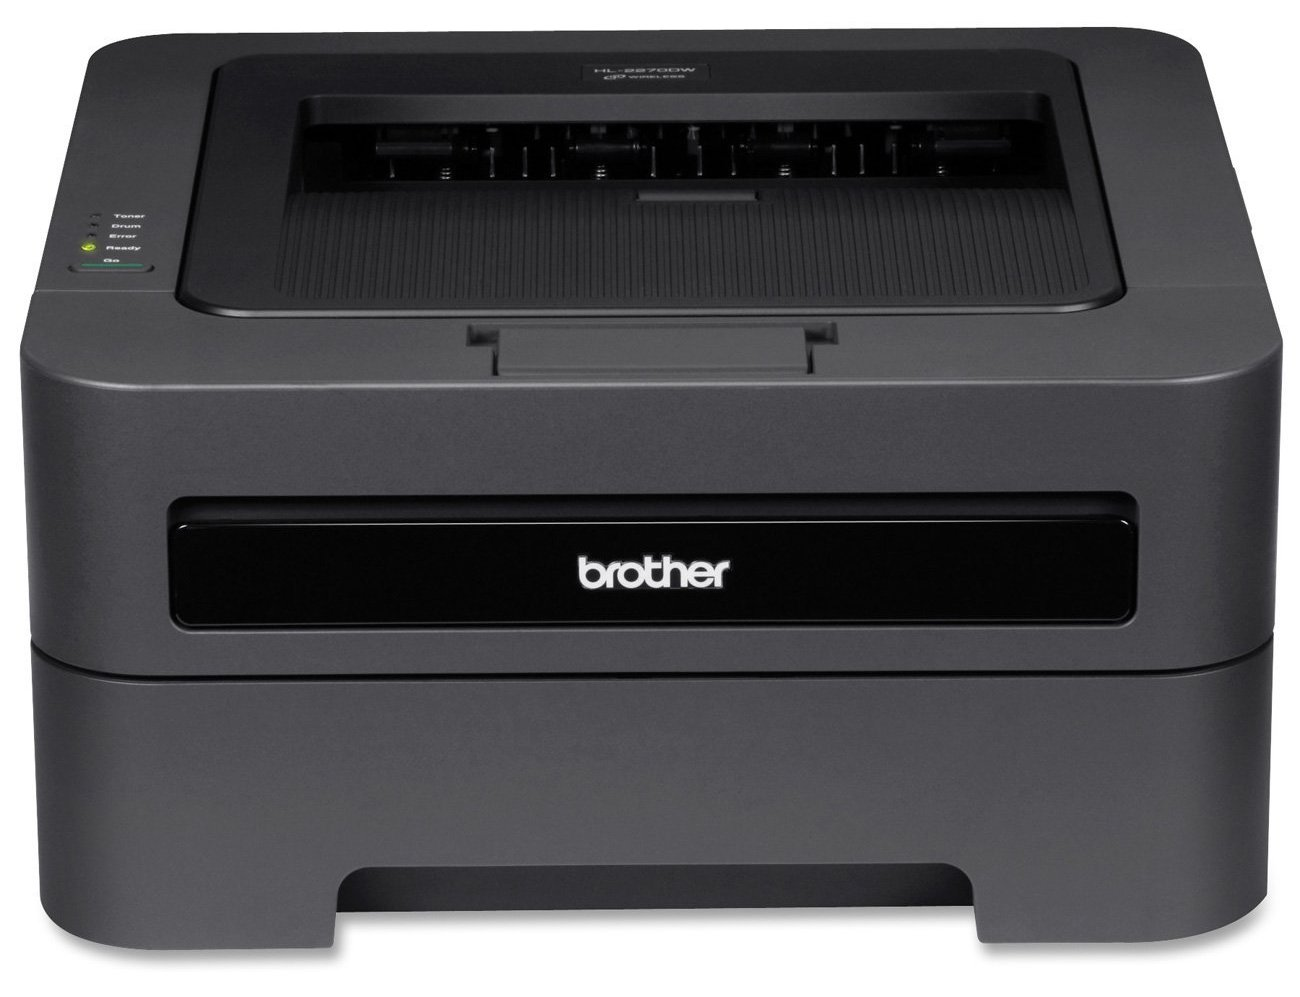 how to change brother printer from offline to online